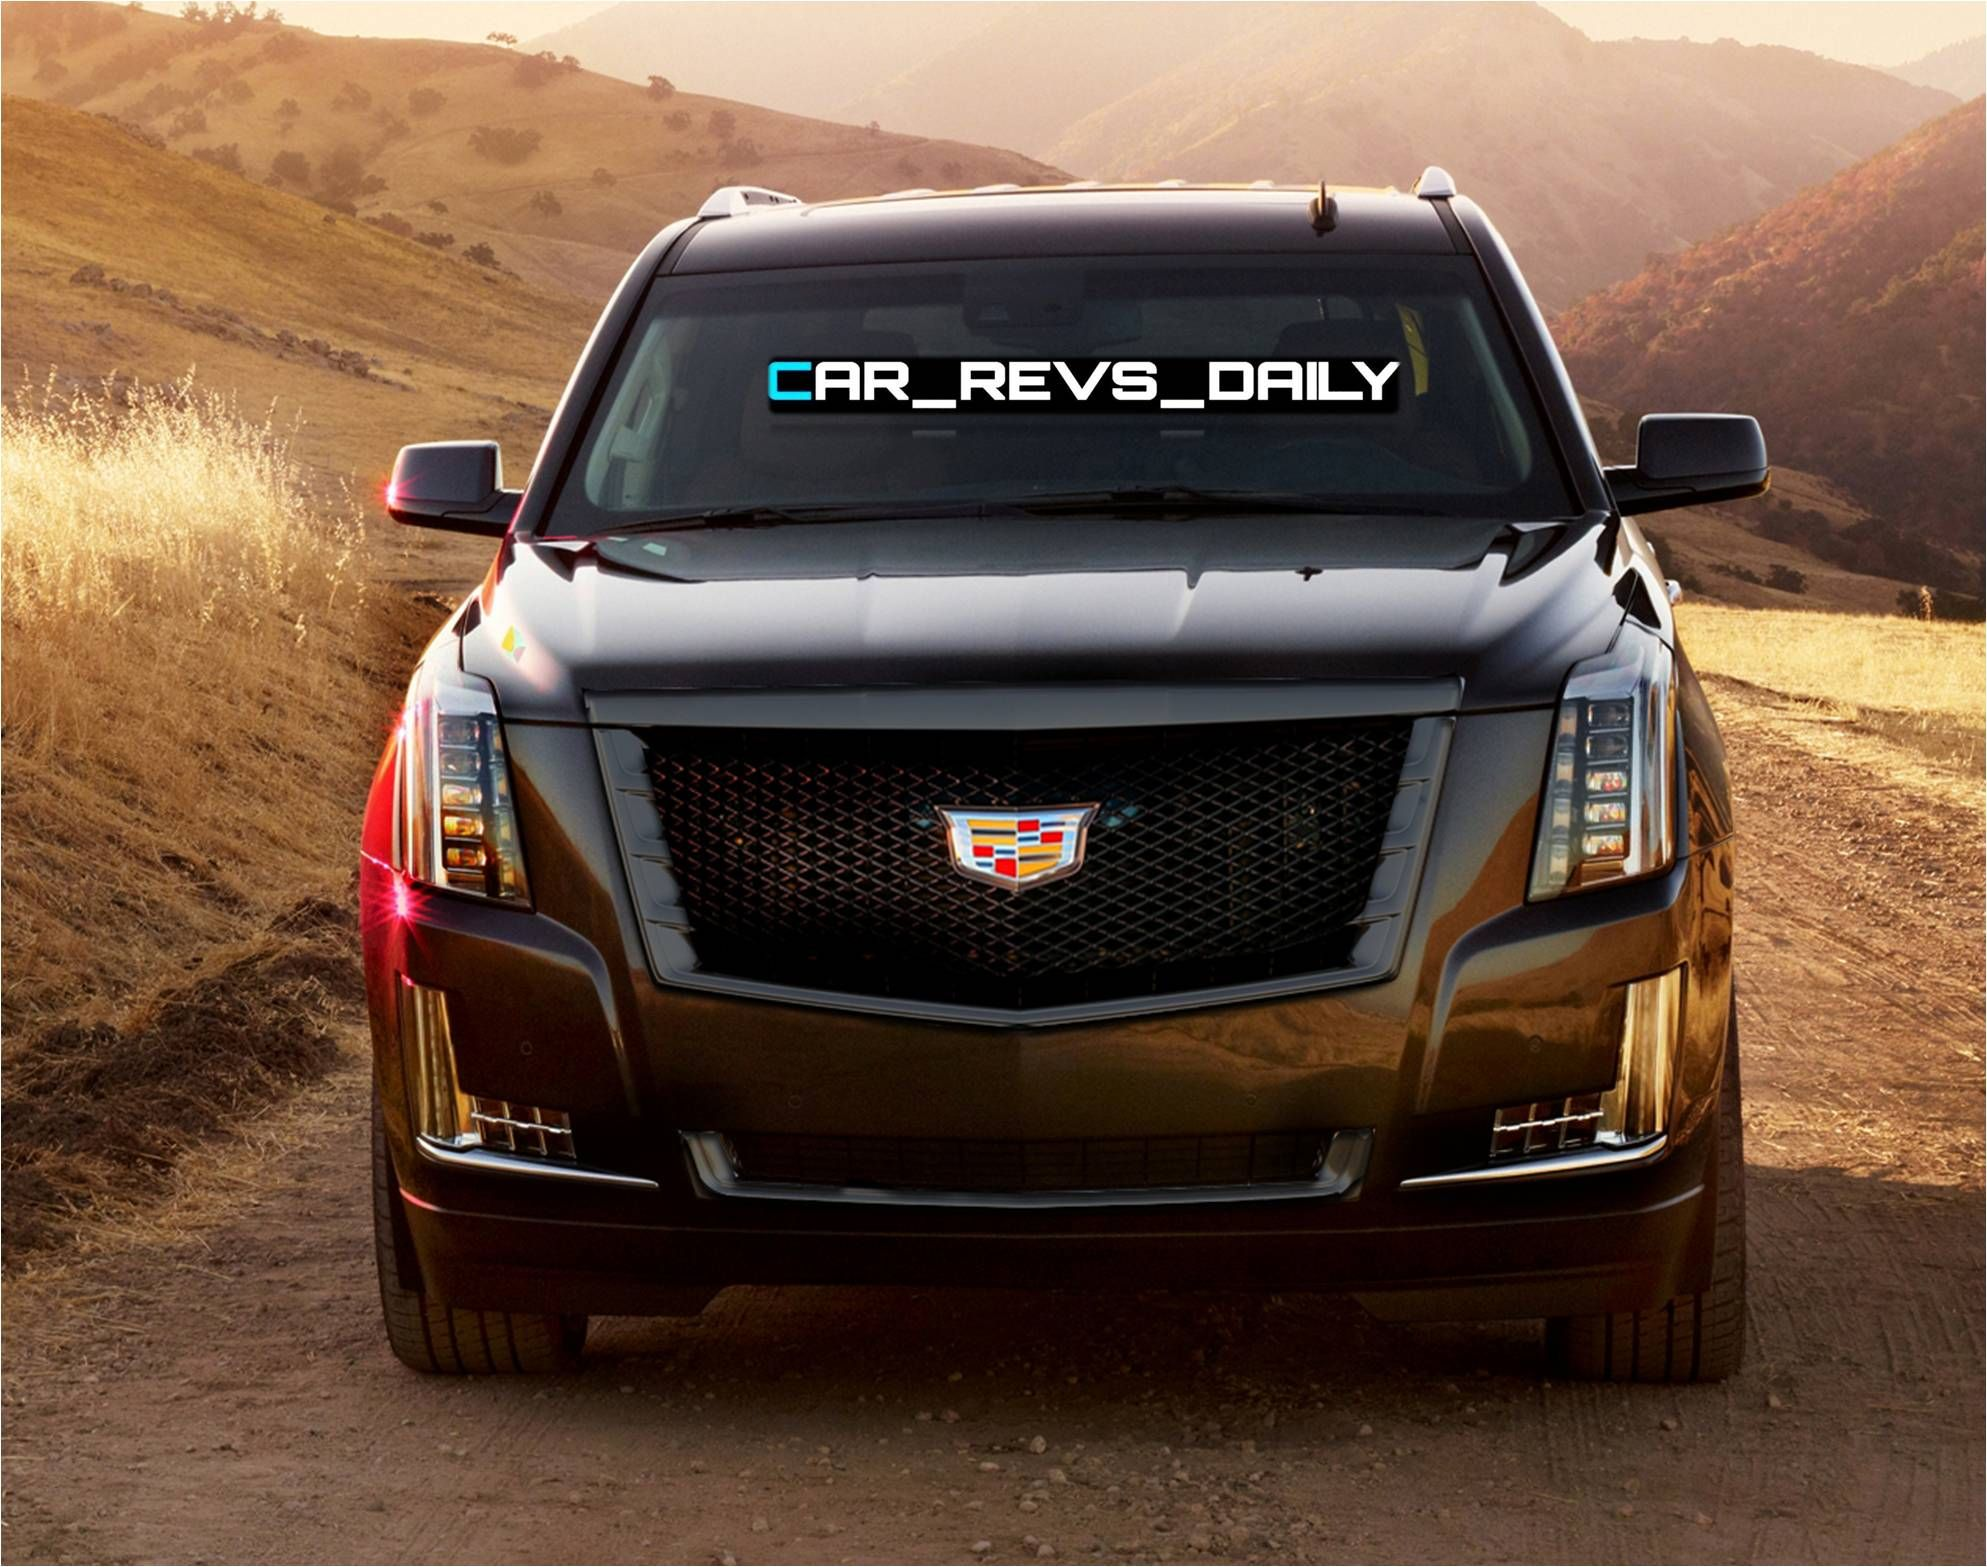 Speculative renderings 2016 cadillac escalade v how does 650hp zr1 supercharged 6 2 liter v8 sound